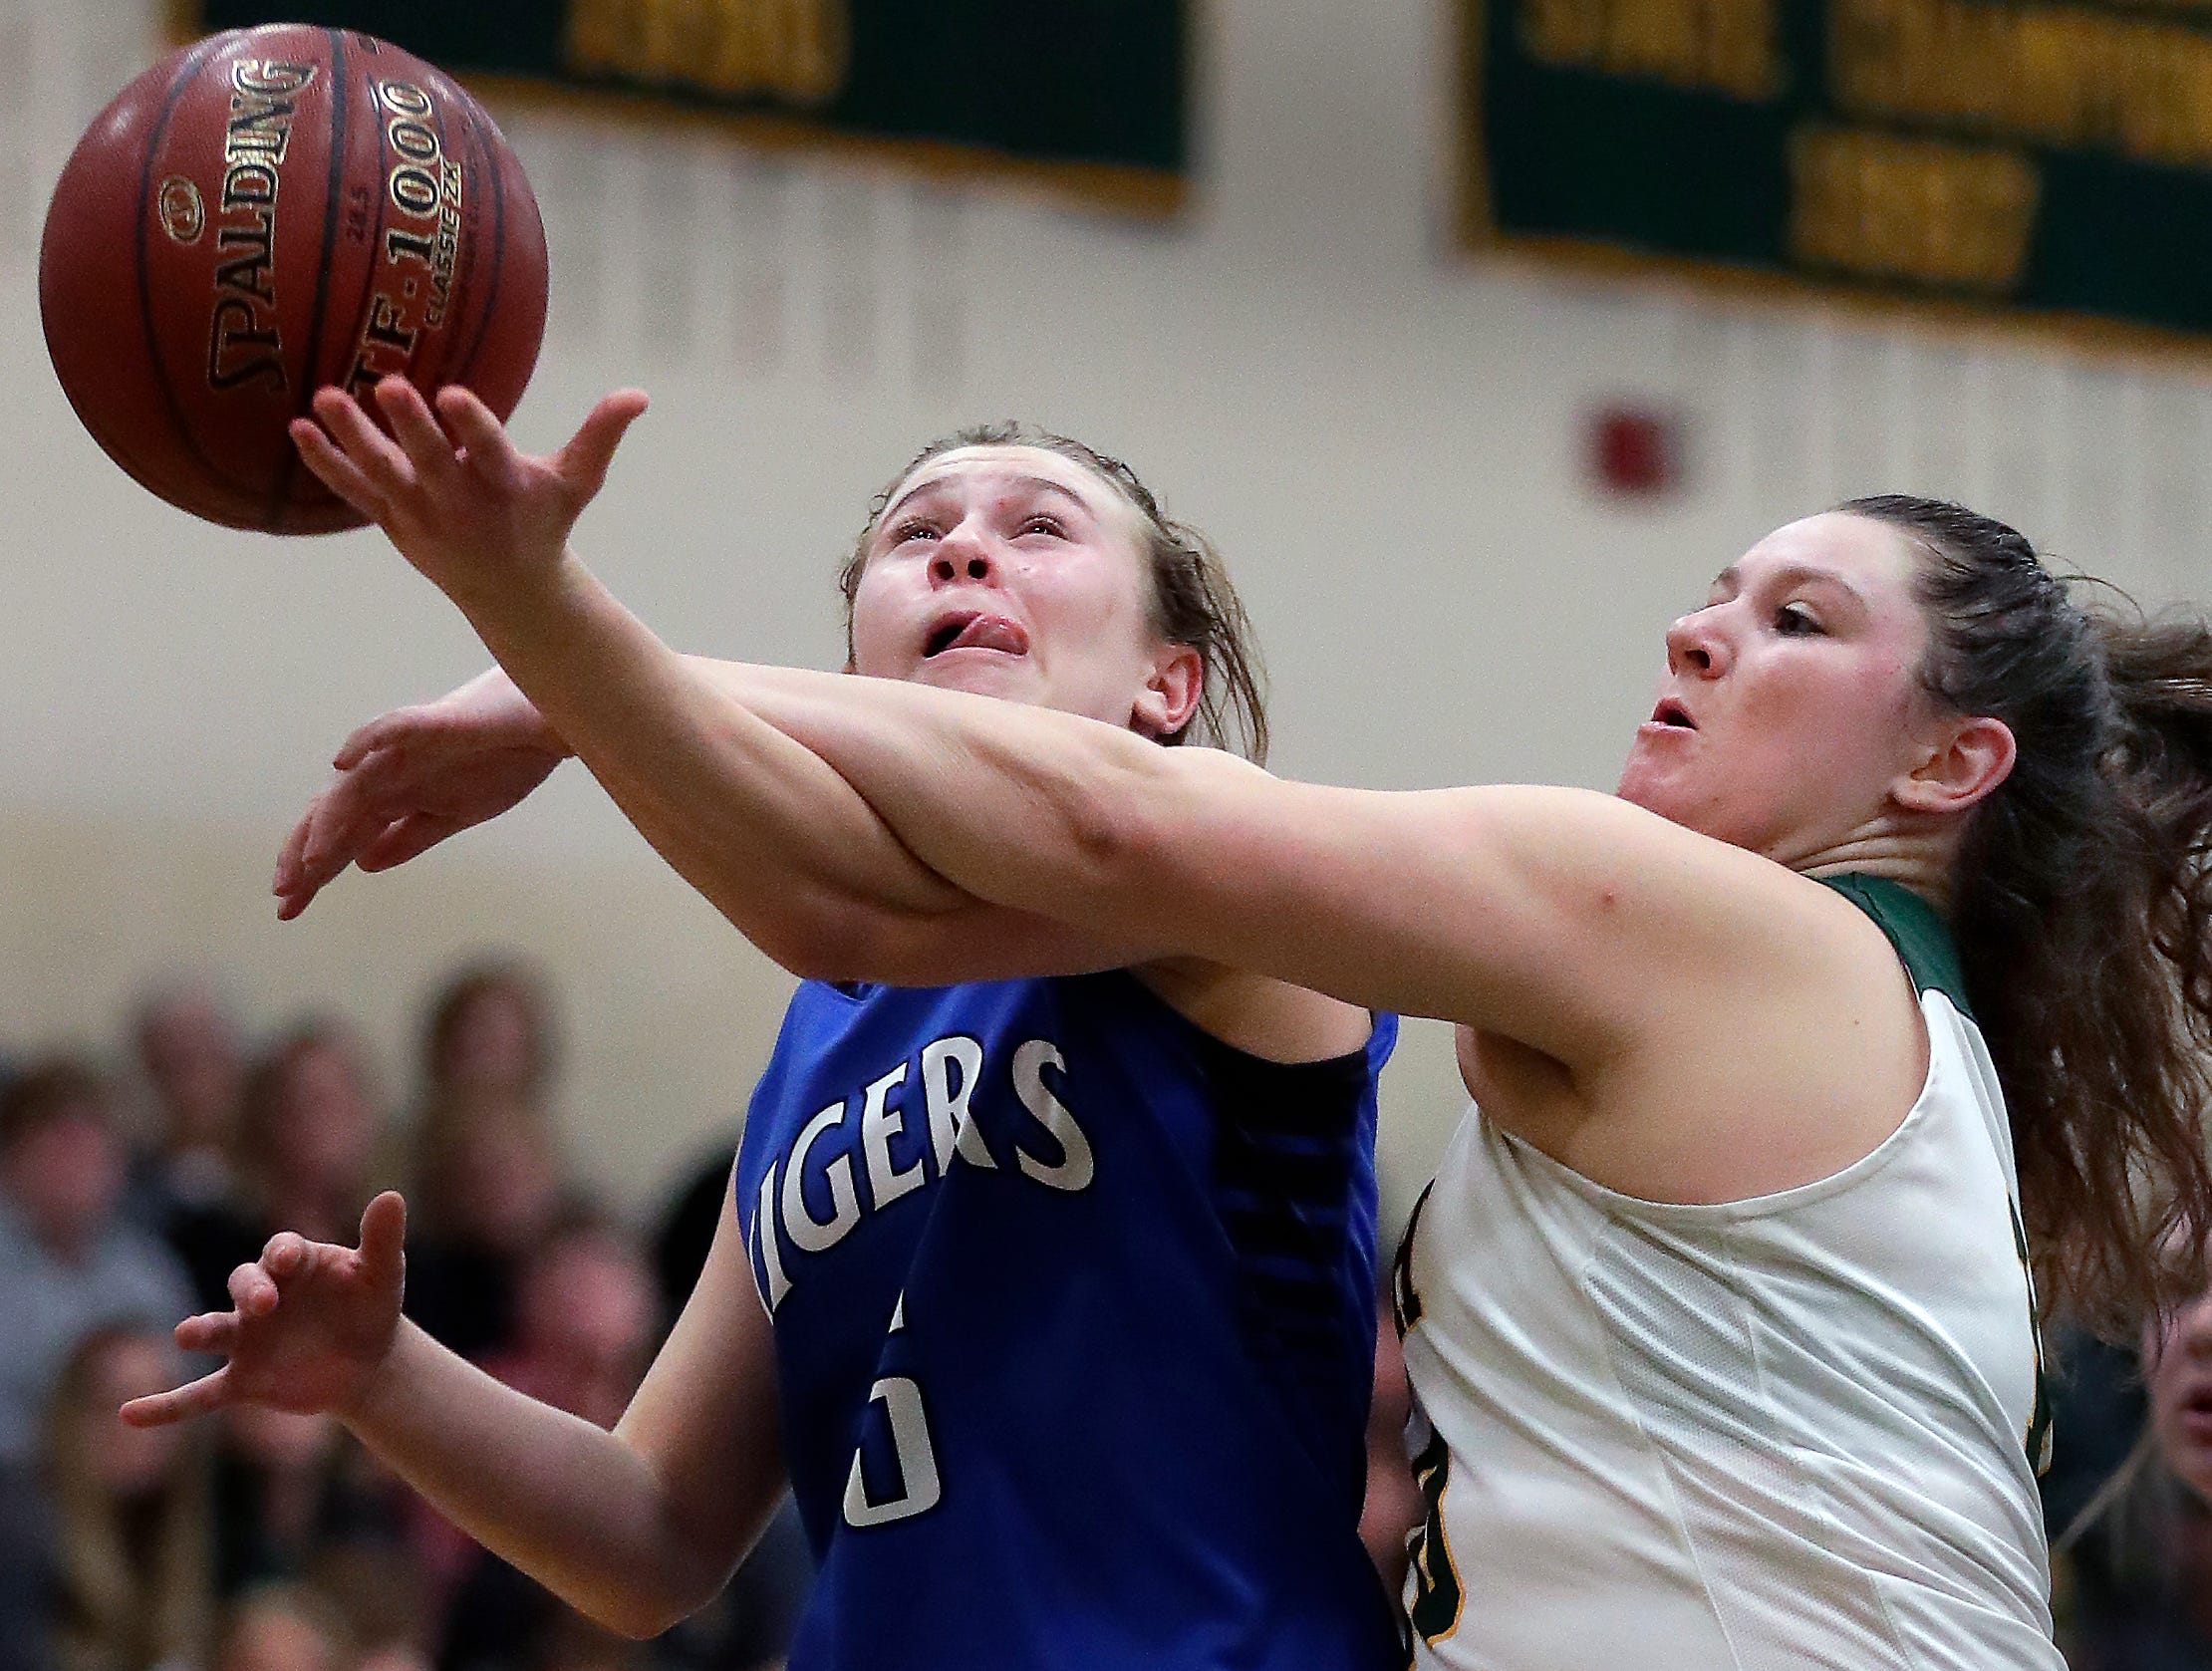 Wrightstown High School's #5 Leah Lemke against Freedom High School's #10 Cameron Evers during their North Eastern Conference girls basketball game on Thursday, January 3, 2019, in Freedom, Wis. Freedom defeated Wrightstown 54 to 34.Wm. Glasheen/USA TODAY NETWORK-Wisconsin.